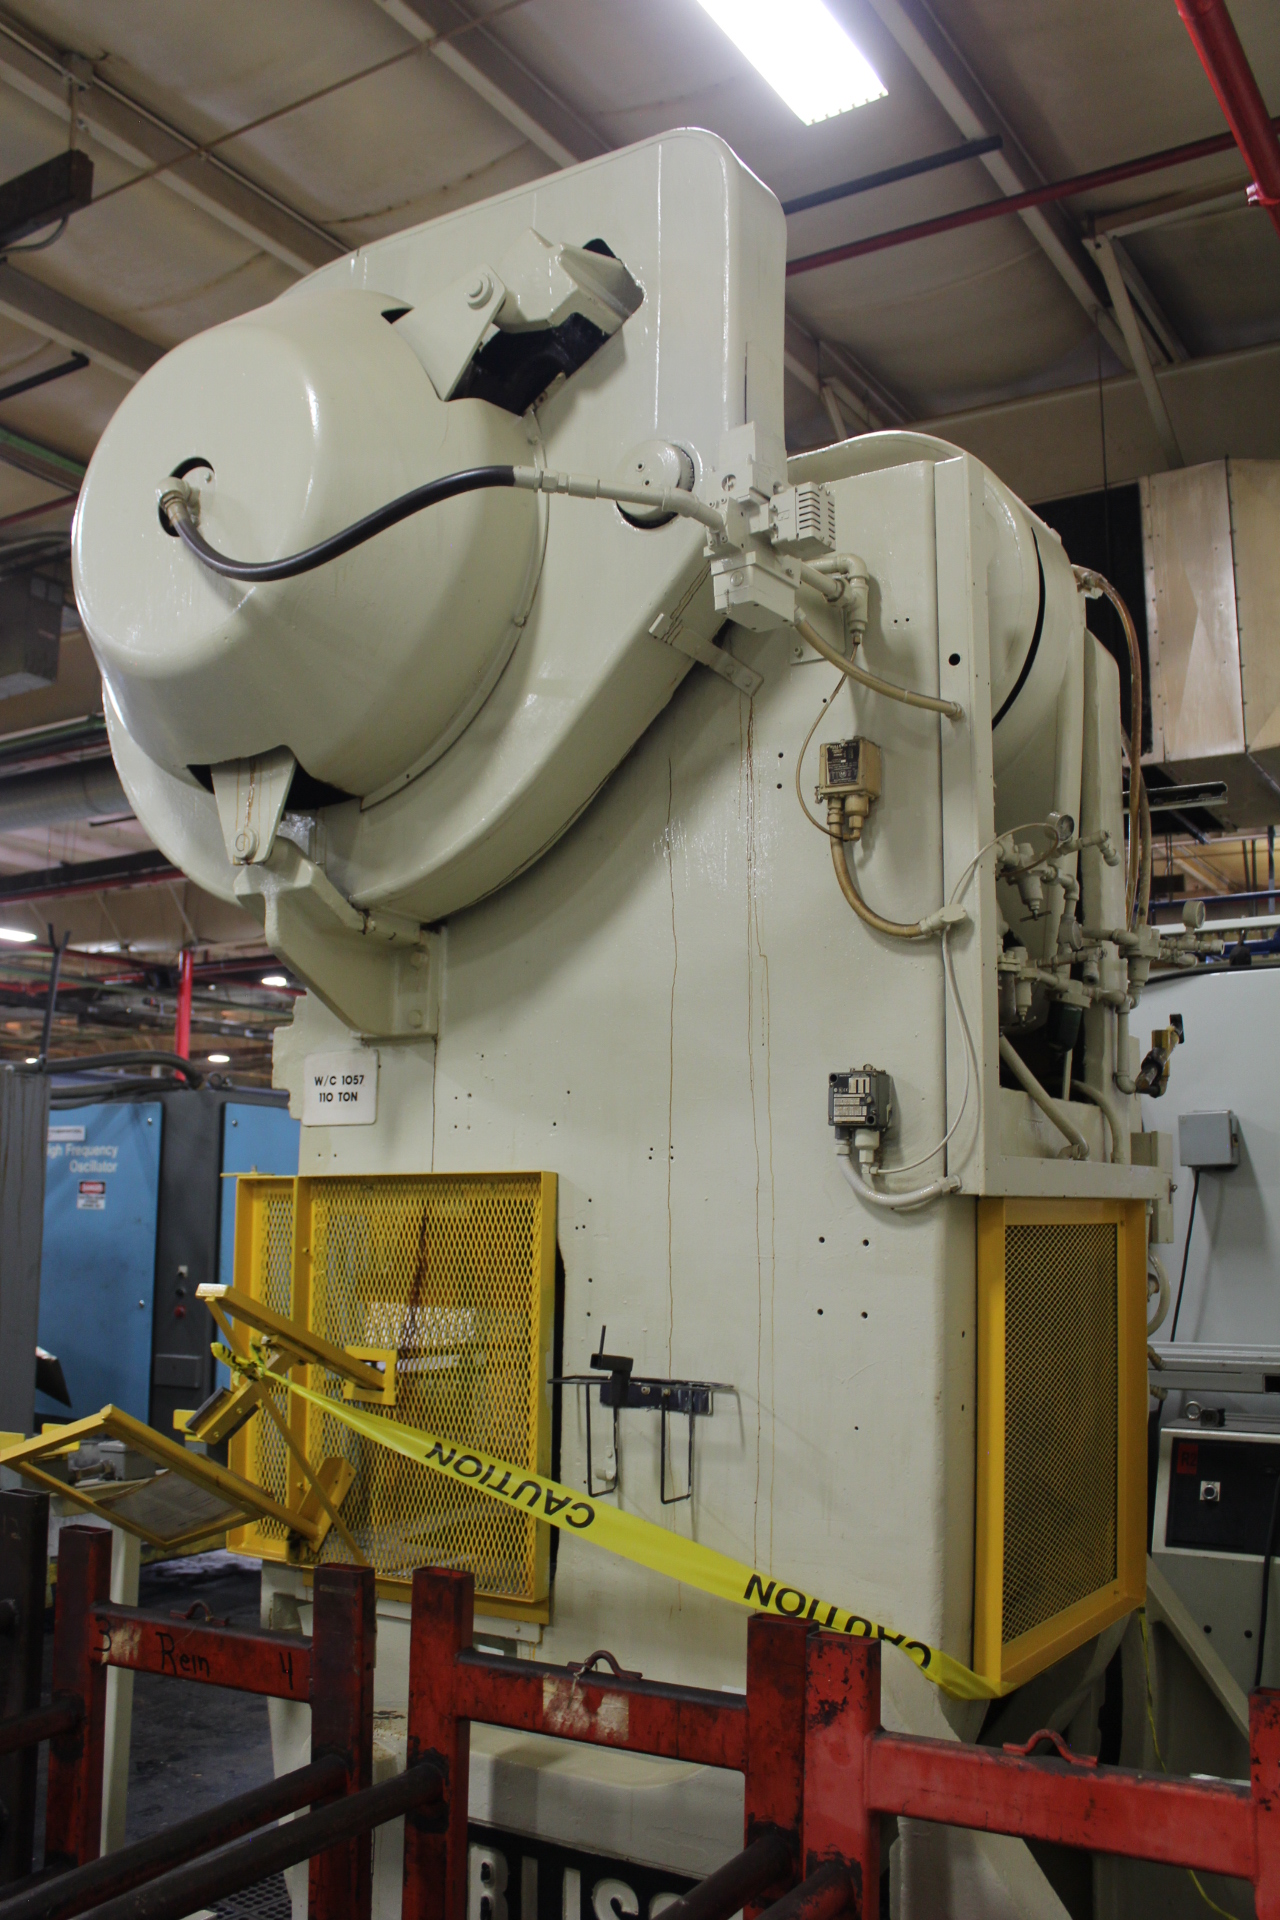 Lot 2 - Bliss Model C-110 110 Ton OBI Press - Angola, Indiana